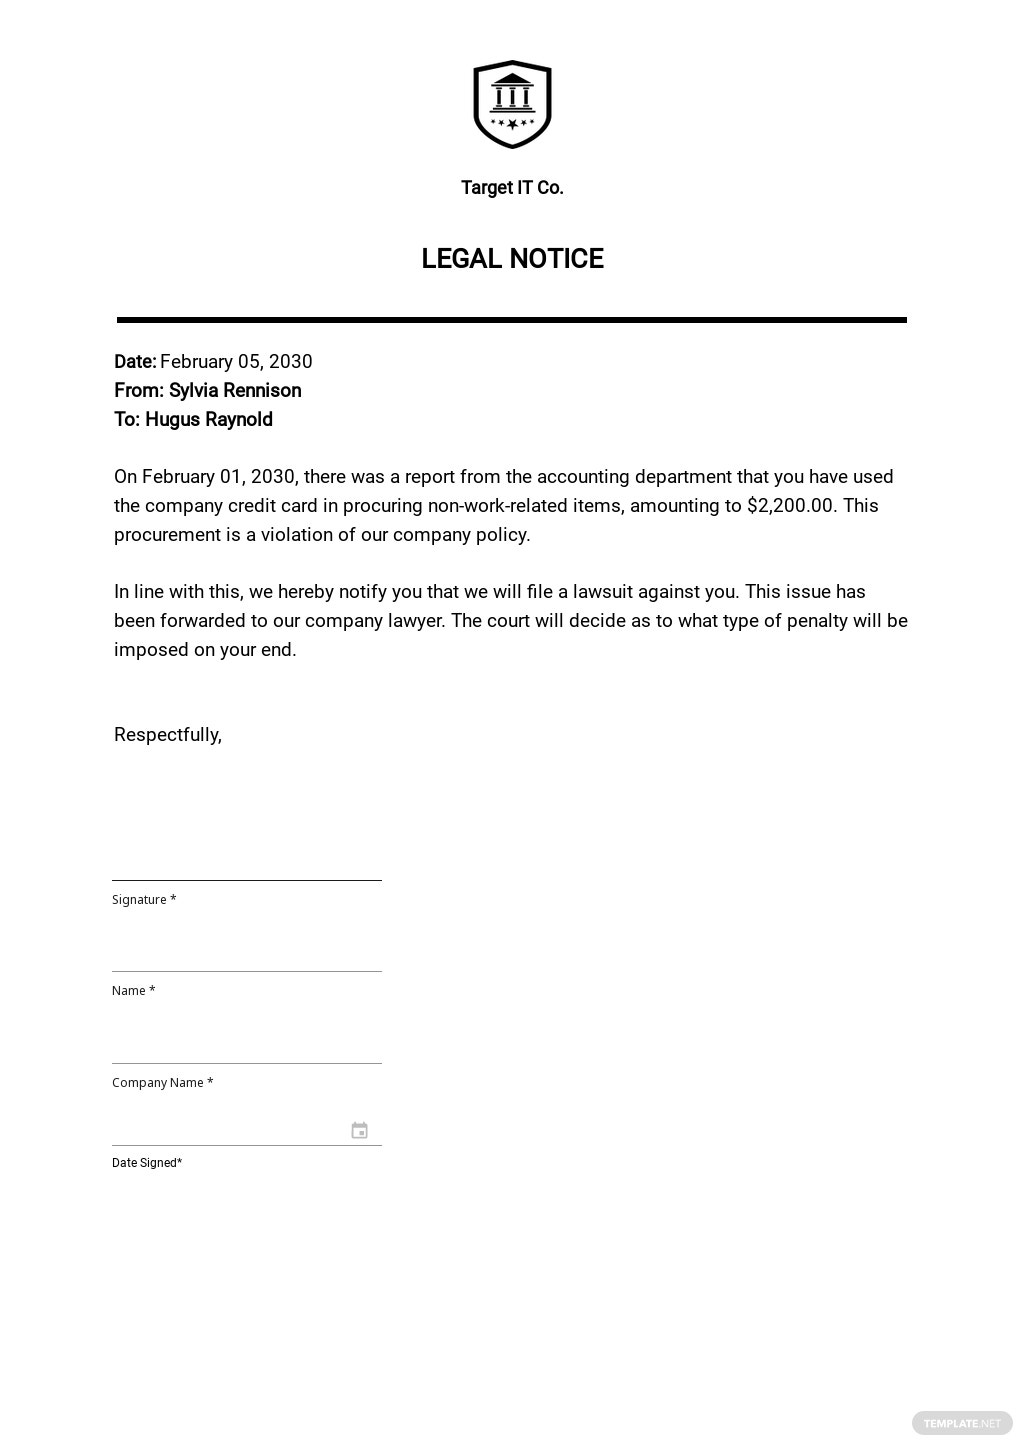 Free Legal Notice Template.jpe